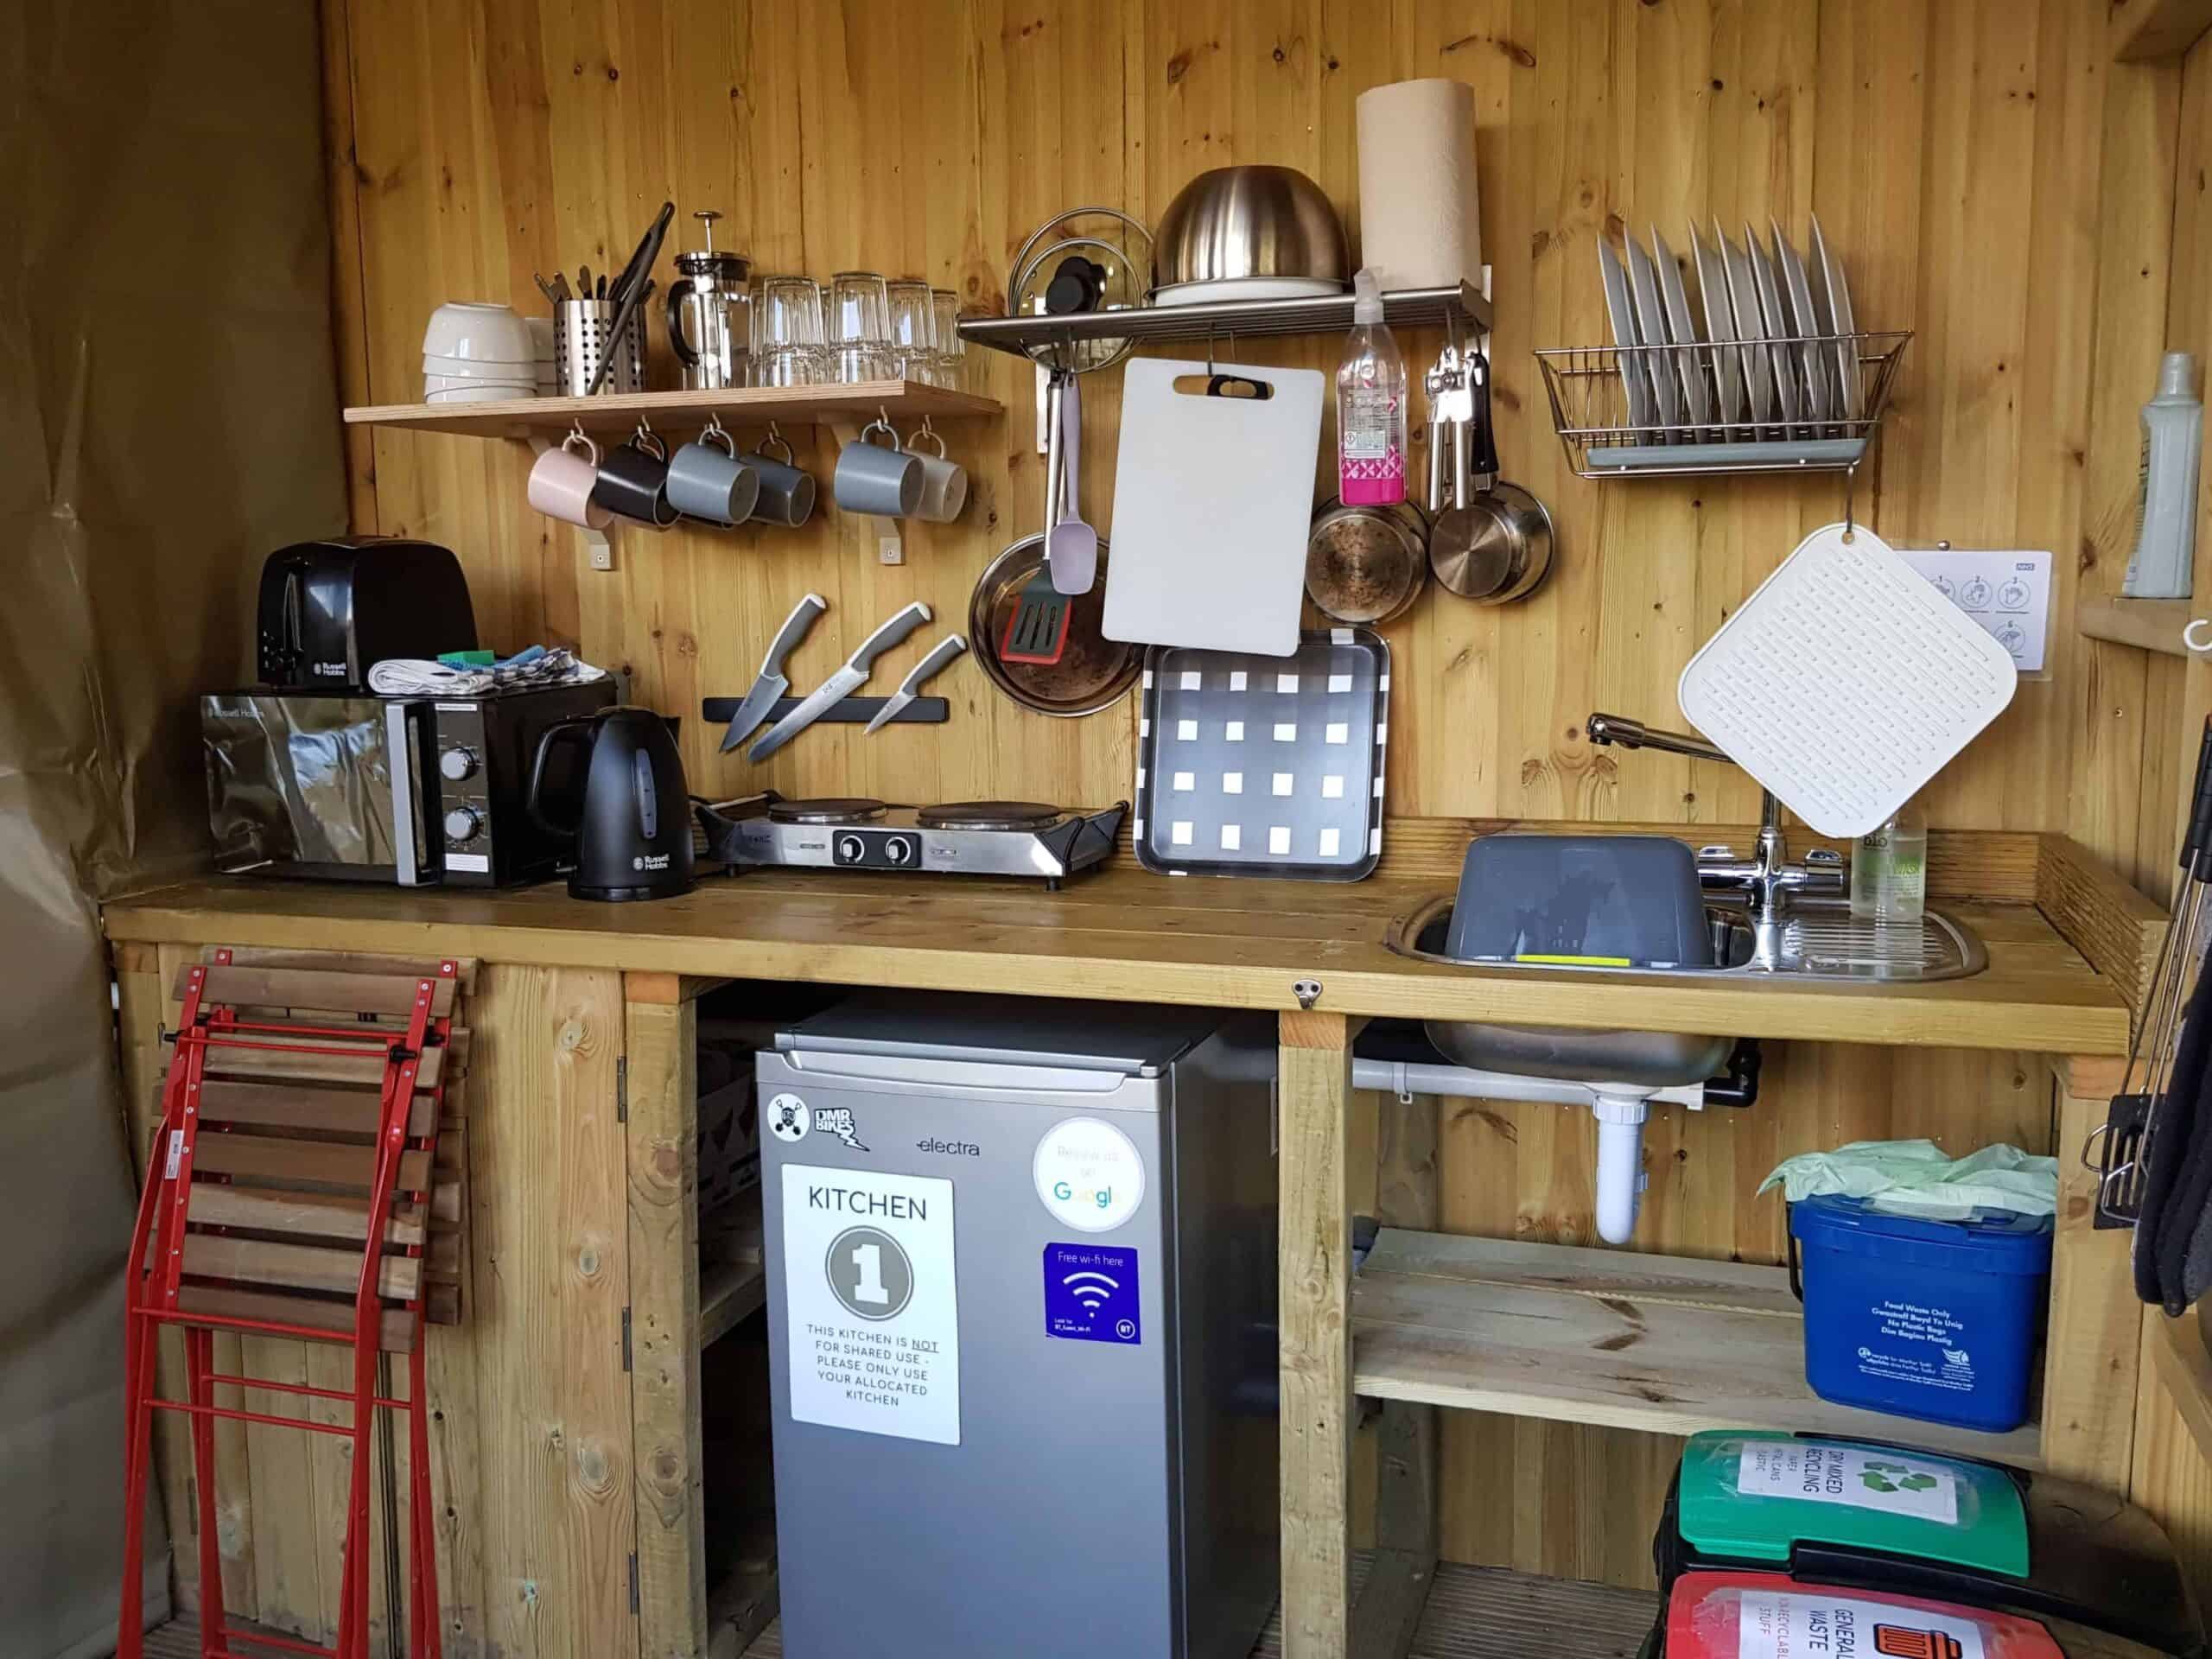 A well kitted out kitchen with sing, two ring hob, fridge, a microwave, kettle, toaster, pots, pans, utensils, crockery, cutlery, tea towels, washing up liquid, hand wash...